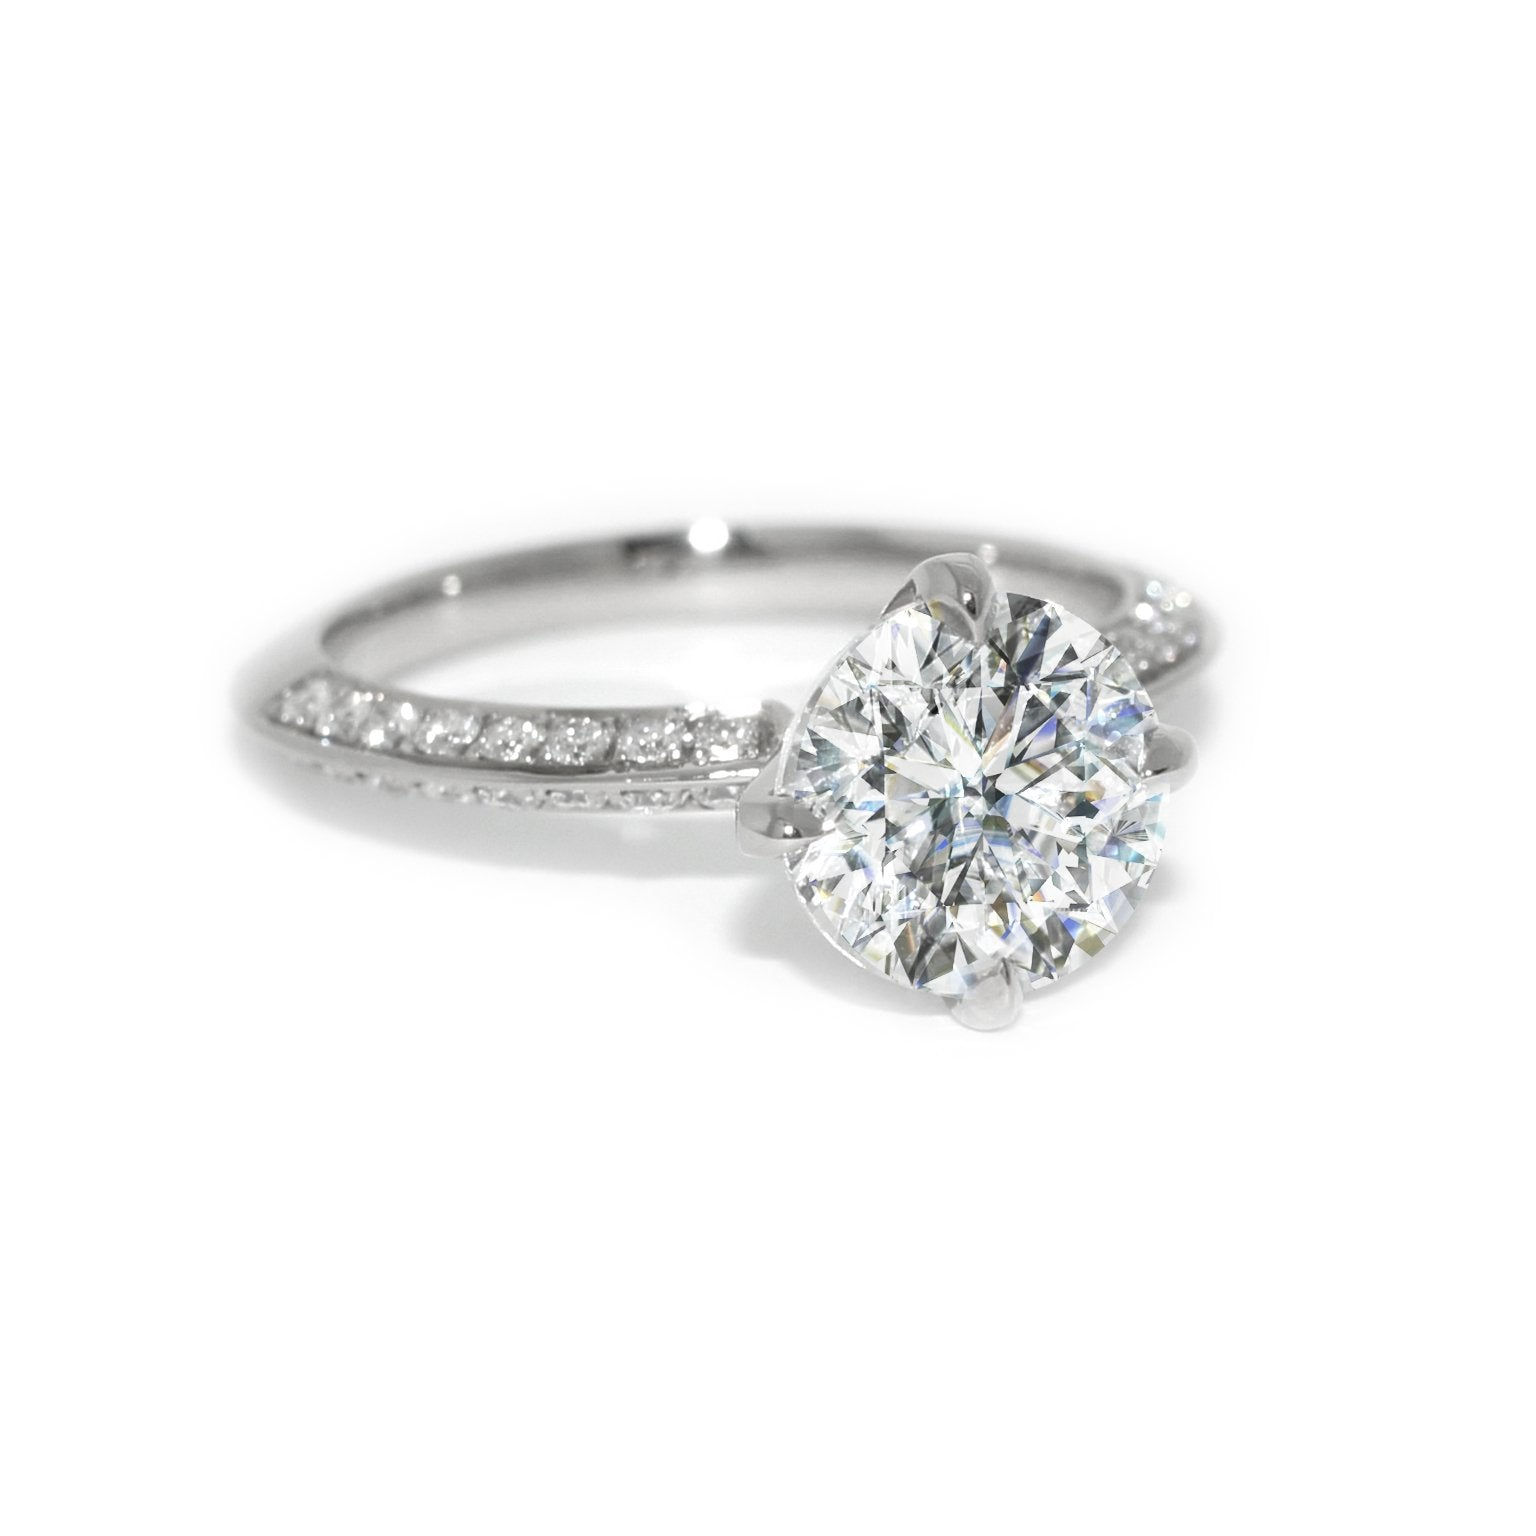 custom-made-diamond-engagement-ring-knife-edge-Sydney-jewellers-Lizunova-Chifley-Square